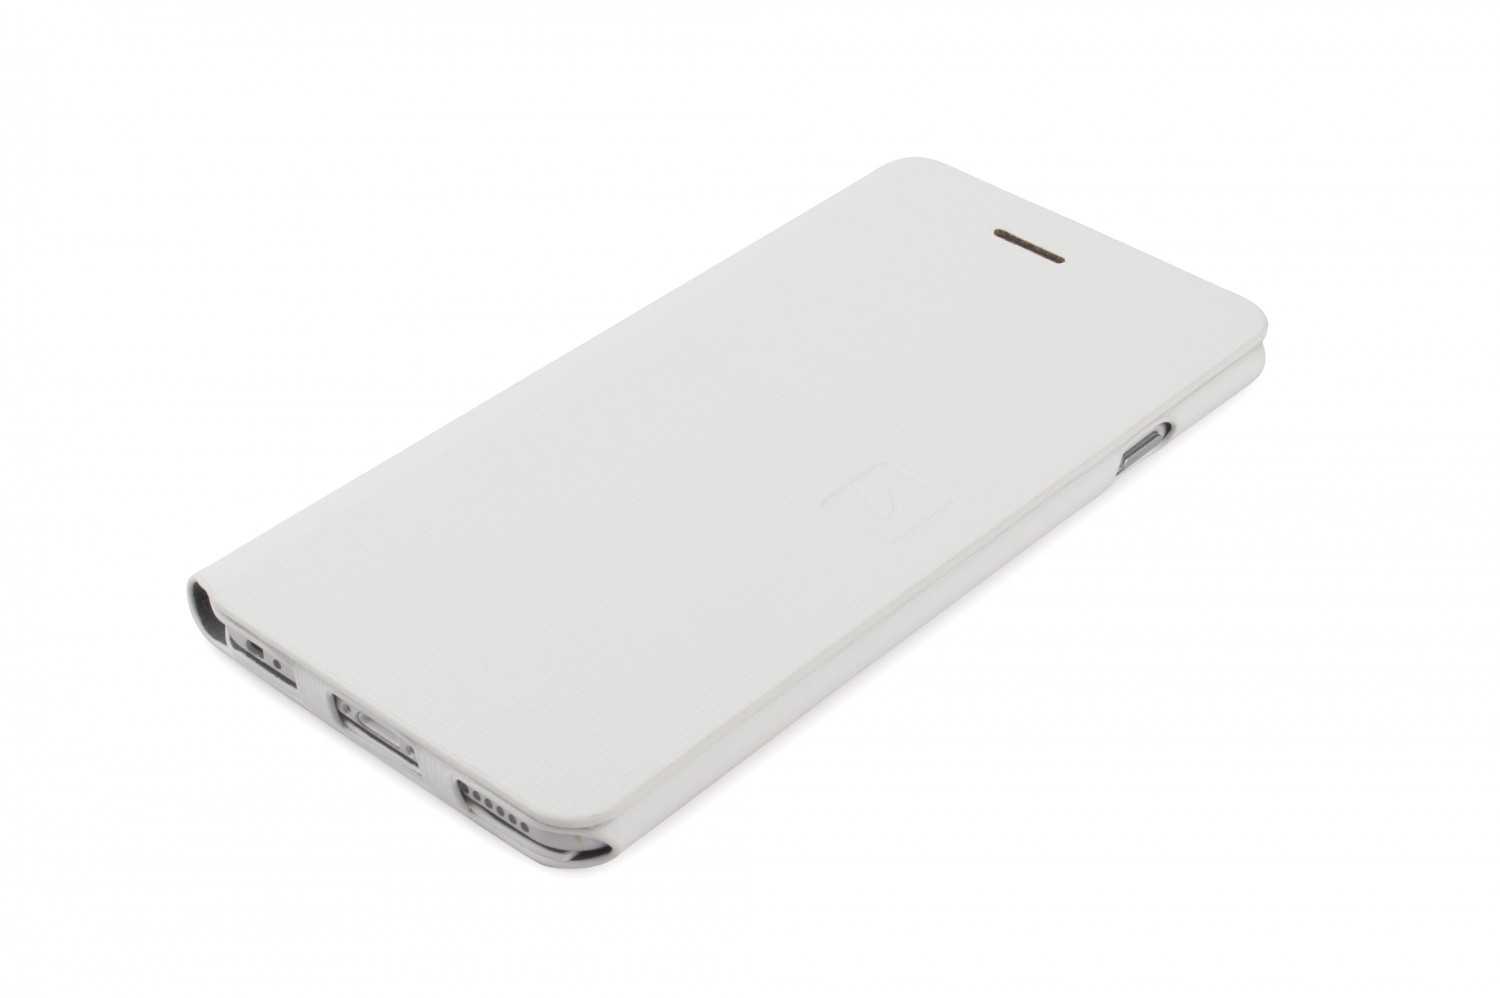 sports shoes d0966 10166 Tucano Leggero Case for Apple iPhone 6 Plus - White